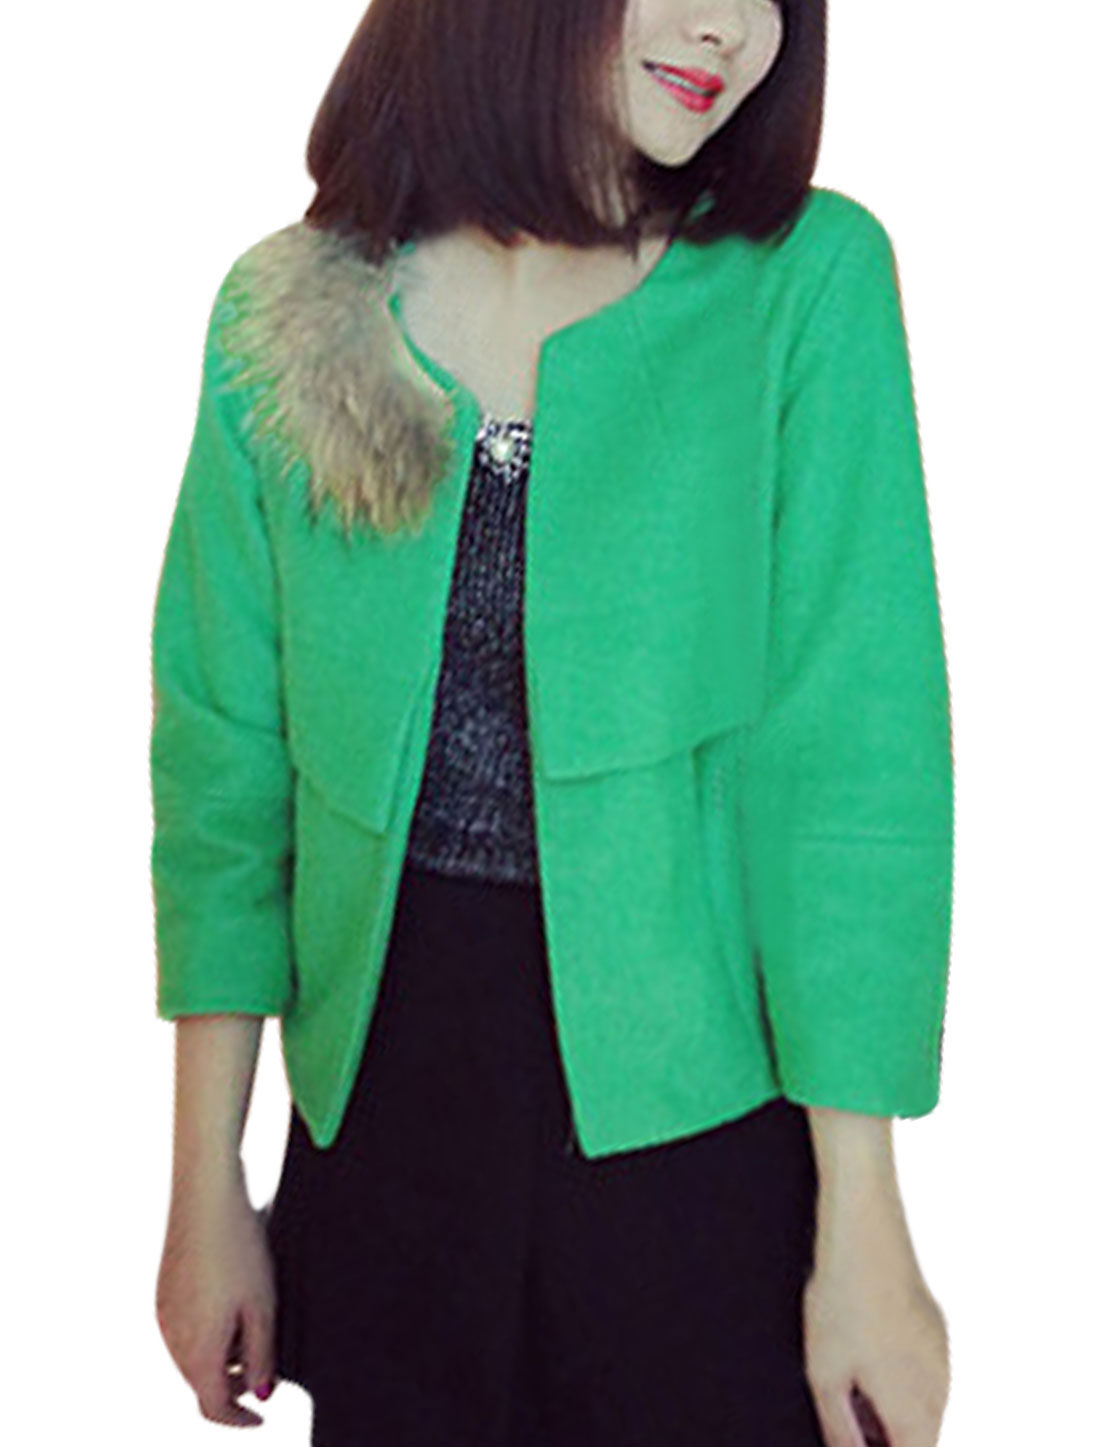 Hook Eye Closure Round Neck Green Belero Worsted Coat for Woman XS